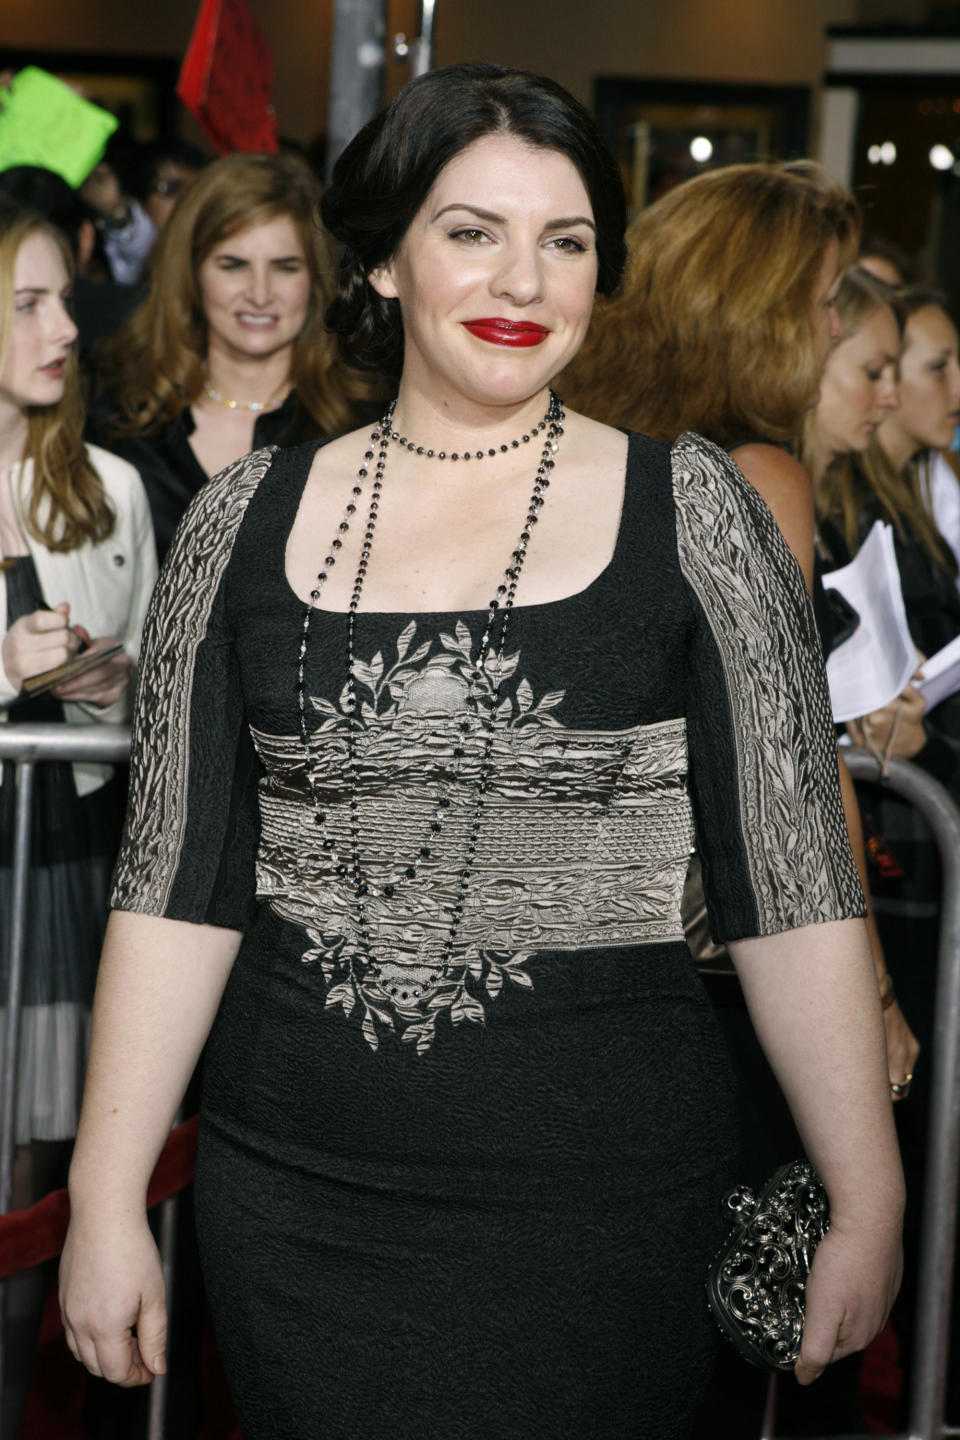 Stephanie Meyer at an event. Source: Reuters